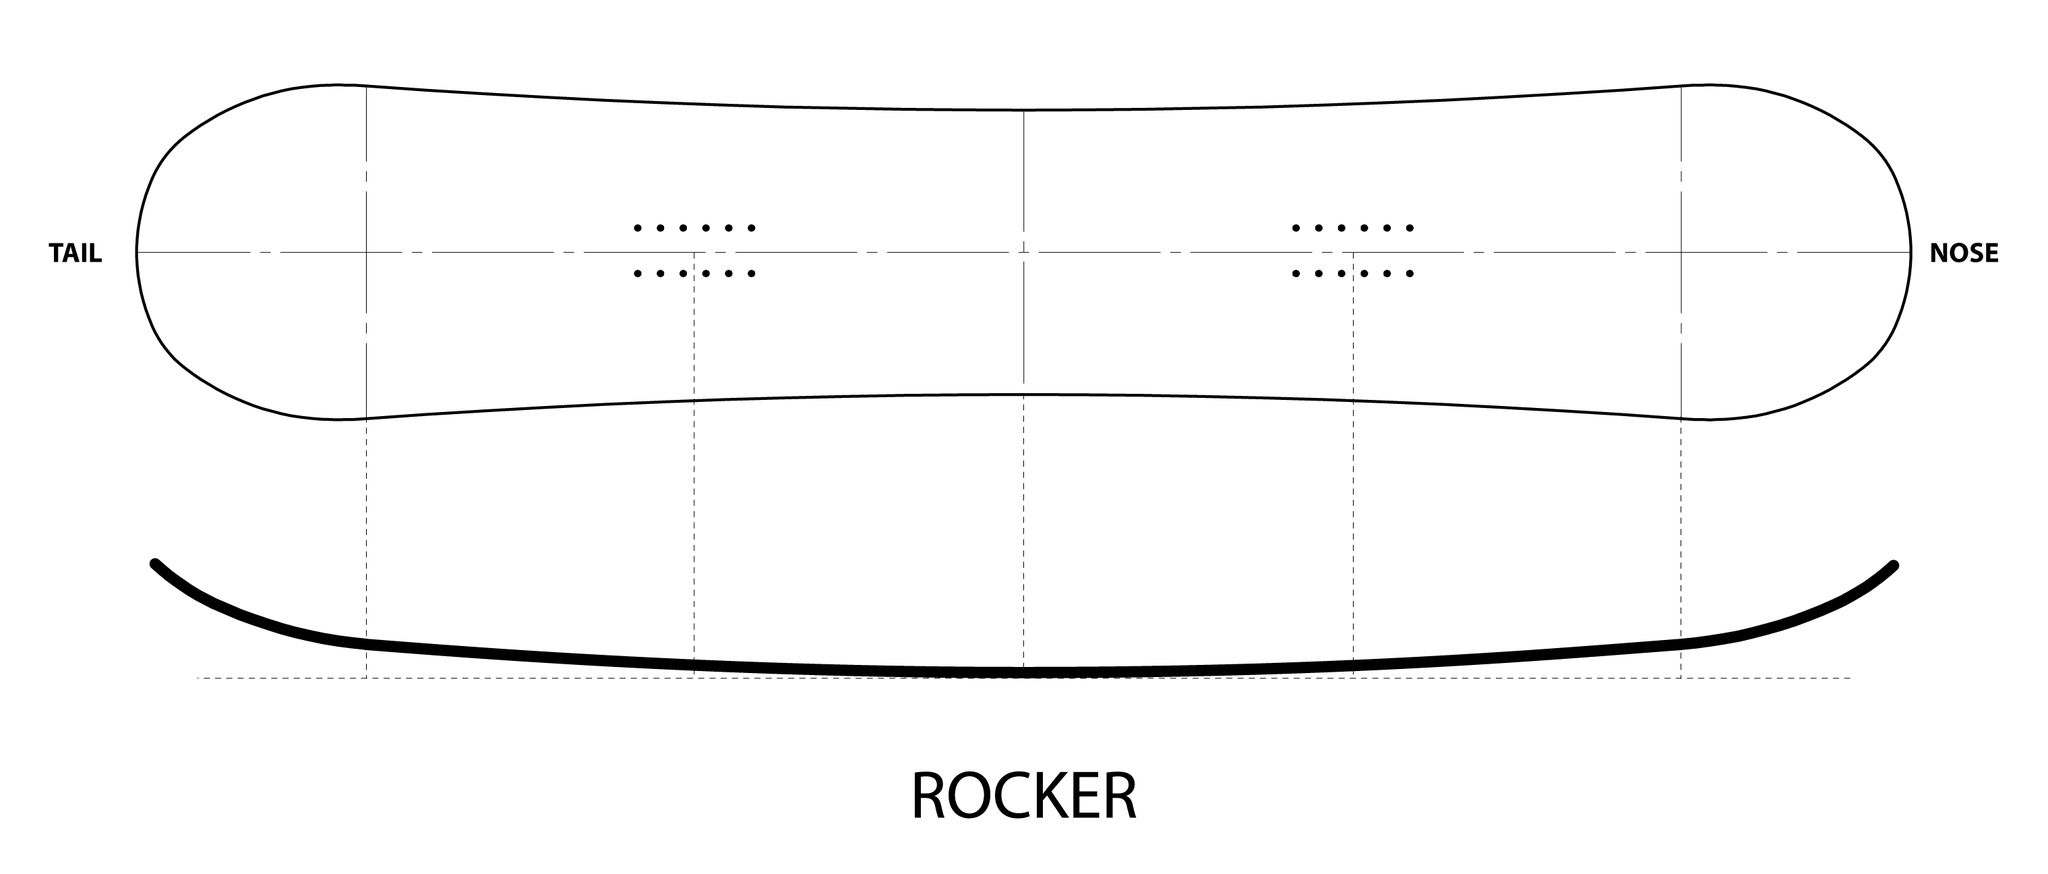 Snowboard profile Rocker